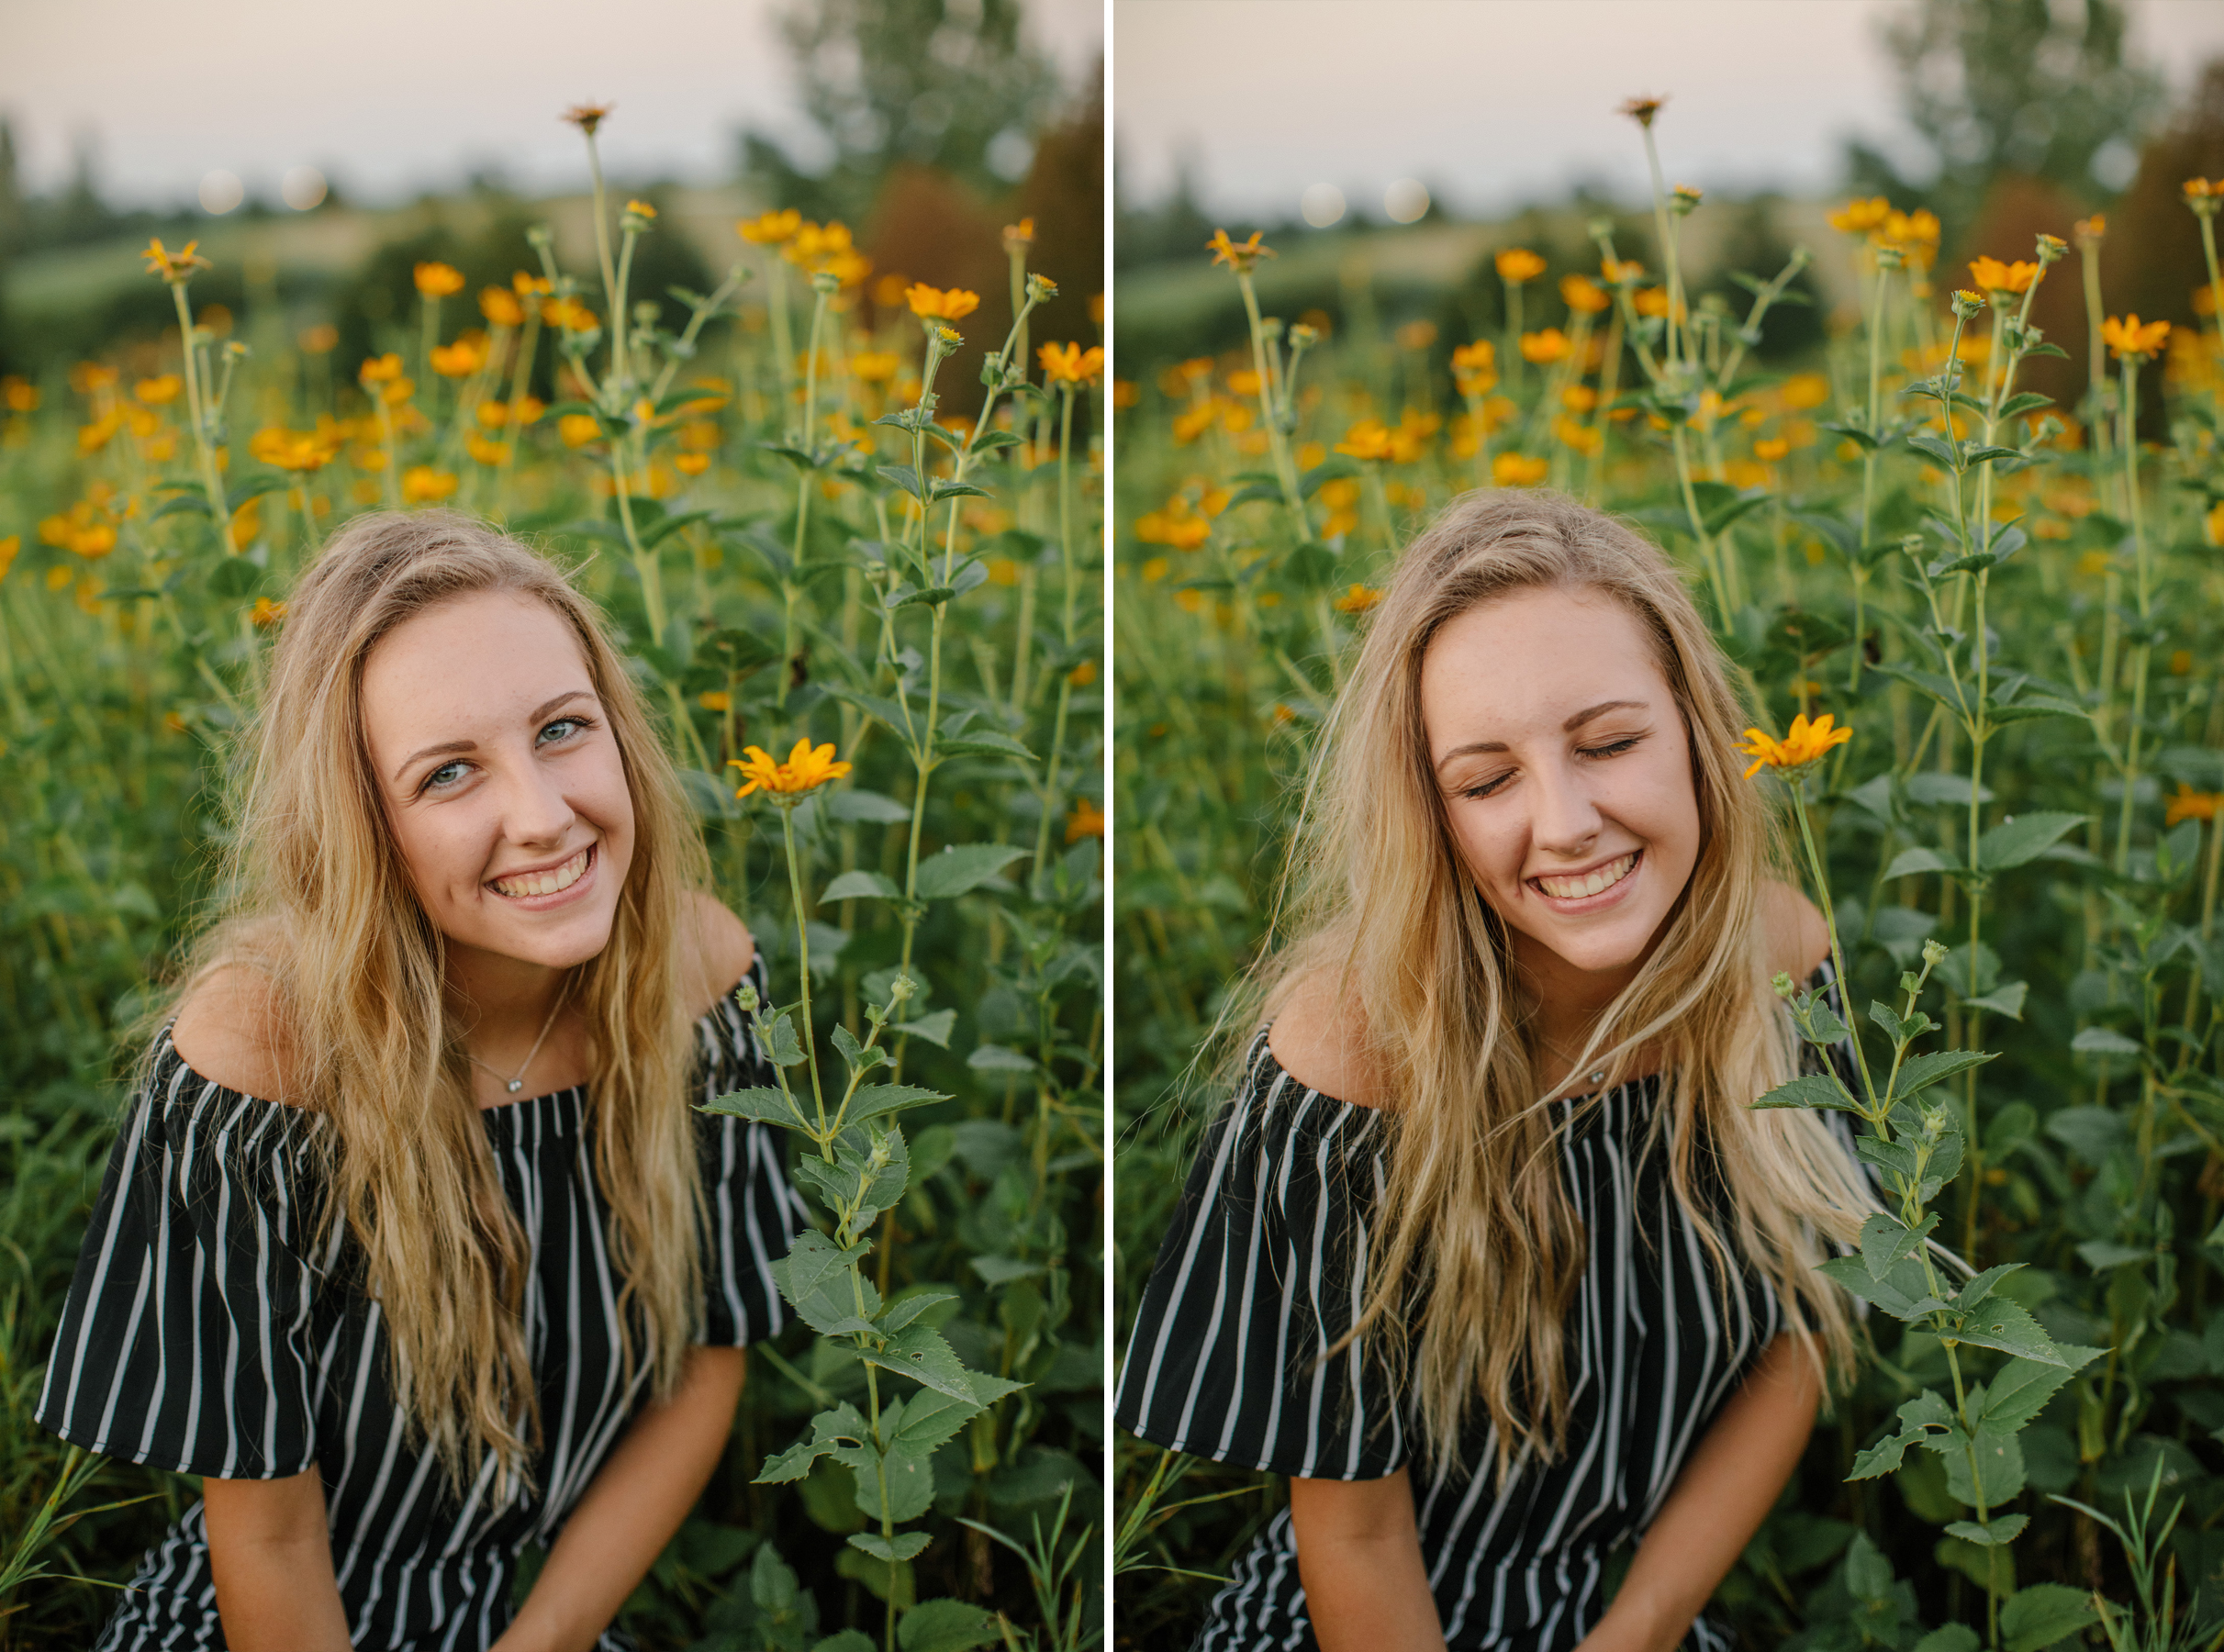 west des moines iowa senior photos modern fun amelia renee